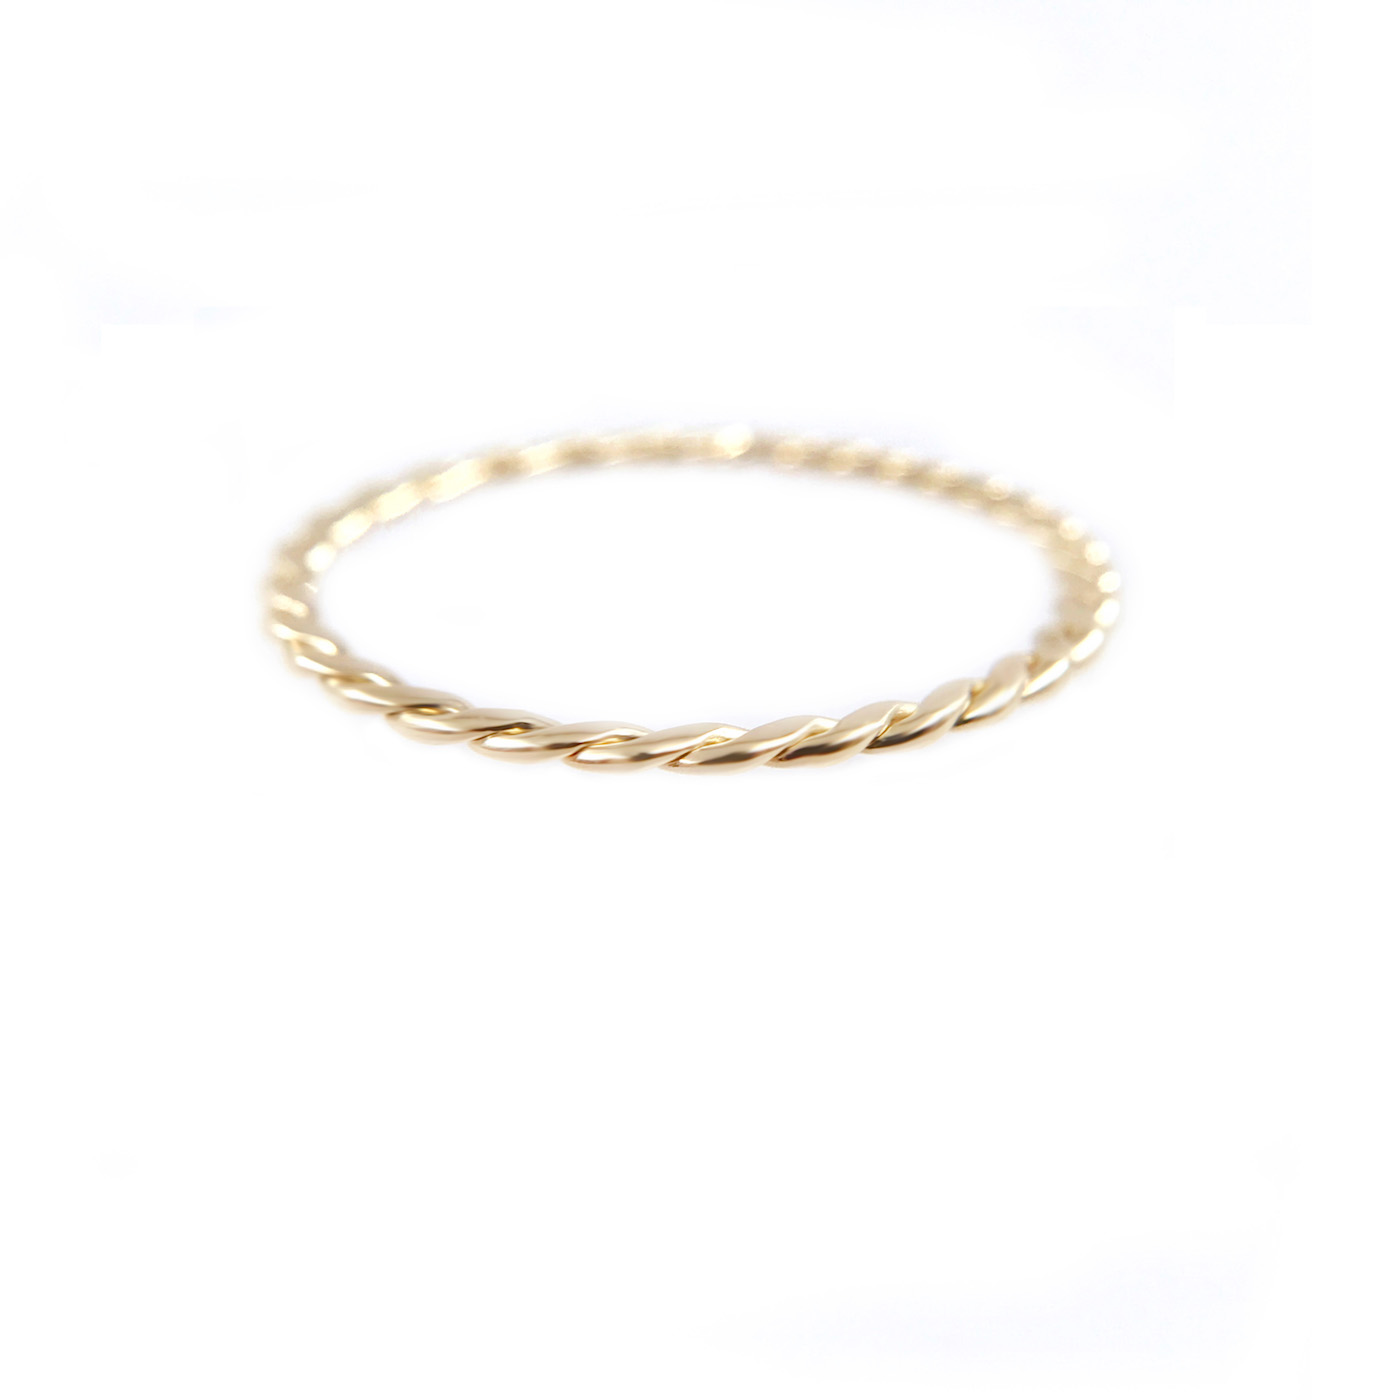 51-JeweLyrie-Signature-Gold-Slim-Twist-0.8mm-band-Ring-Guard-Spacer_7931